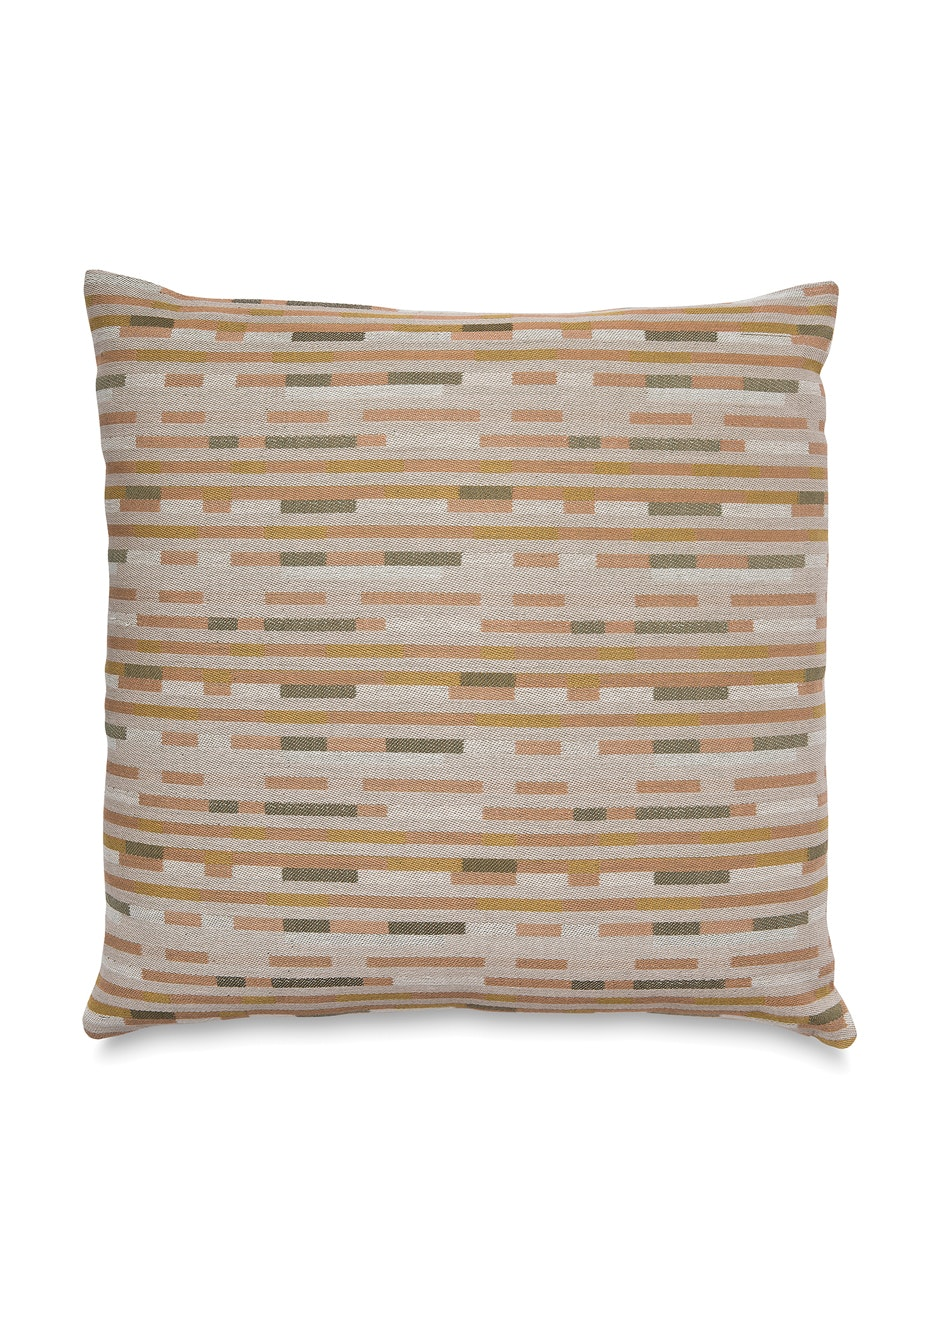 Citta - Linie Woven Cushion Cover - Multi